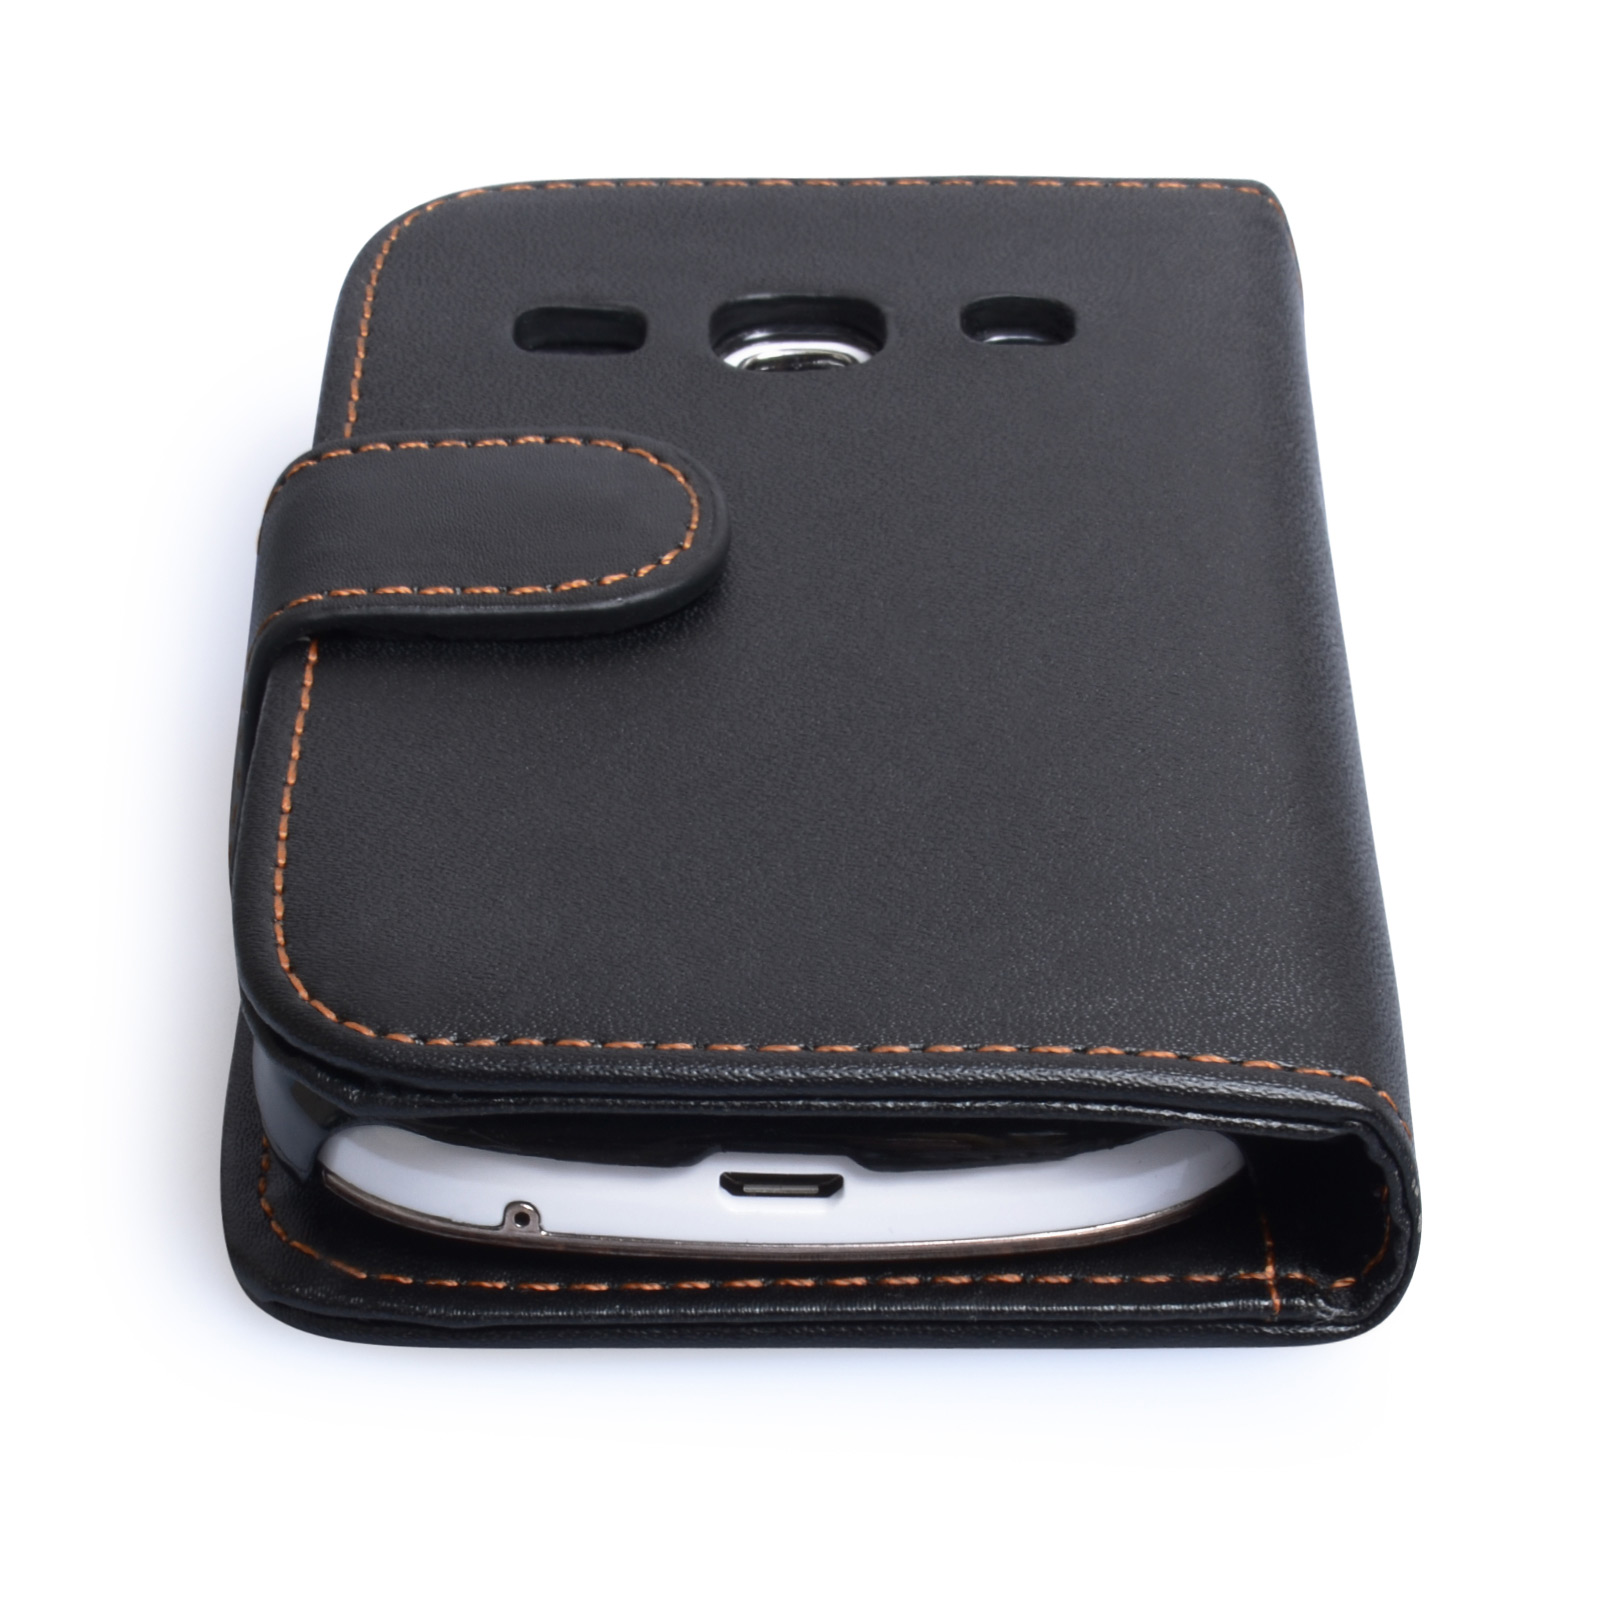 YouSave Samsung Galaxy Fame Leather Effect Wallet Case - Black